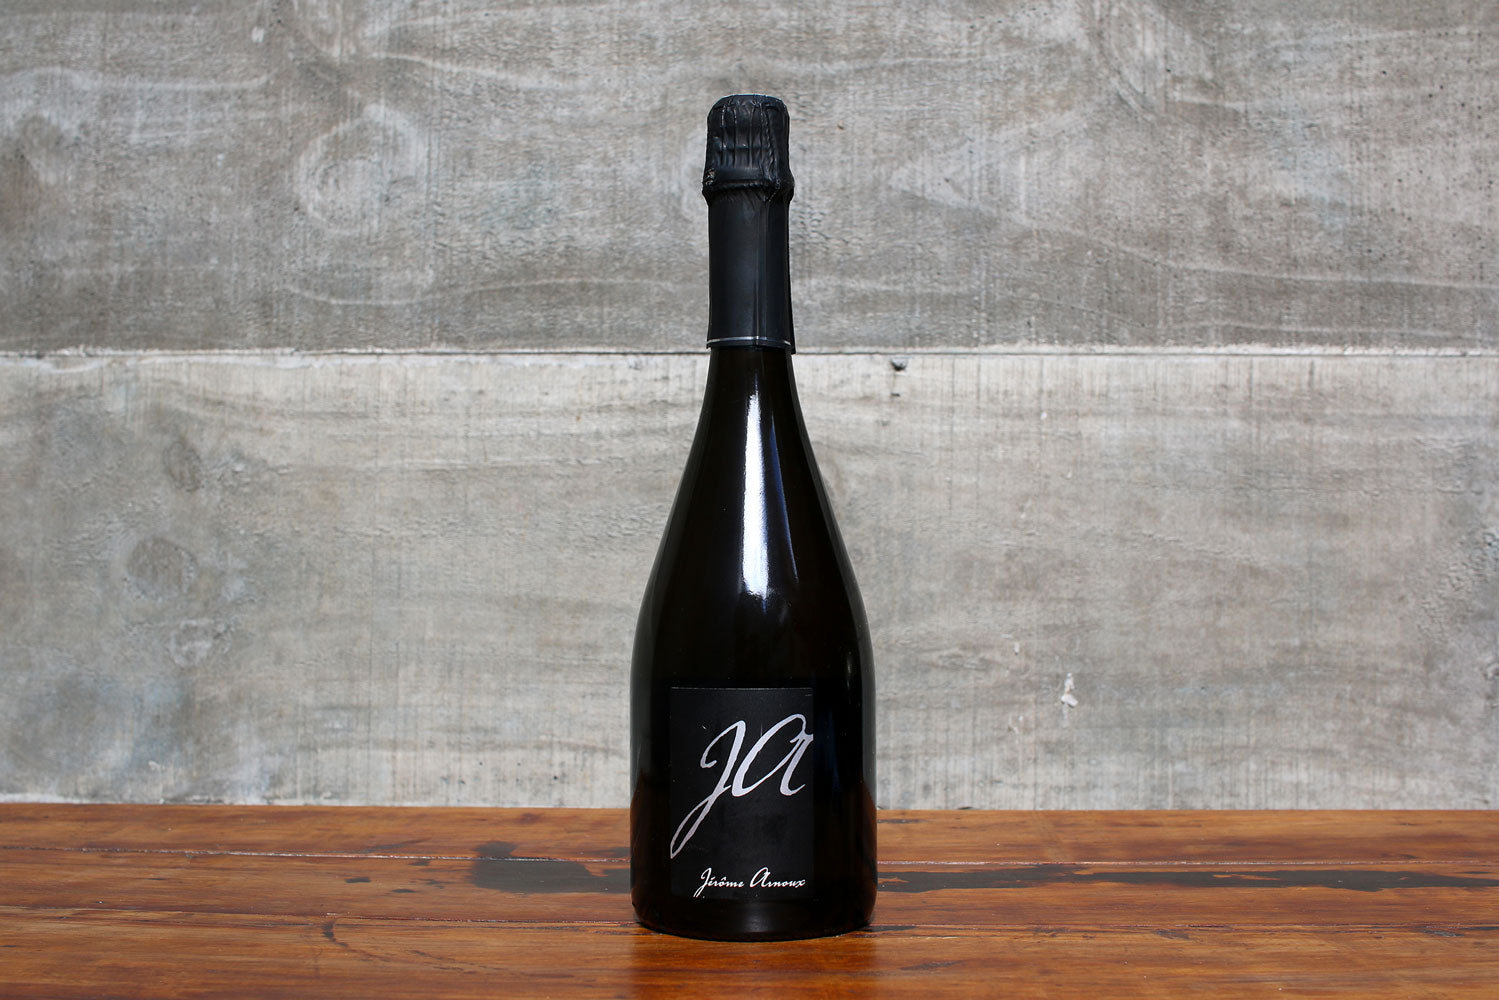 2013 Jerome Arnoux 'ZD' Brut Nature